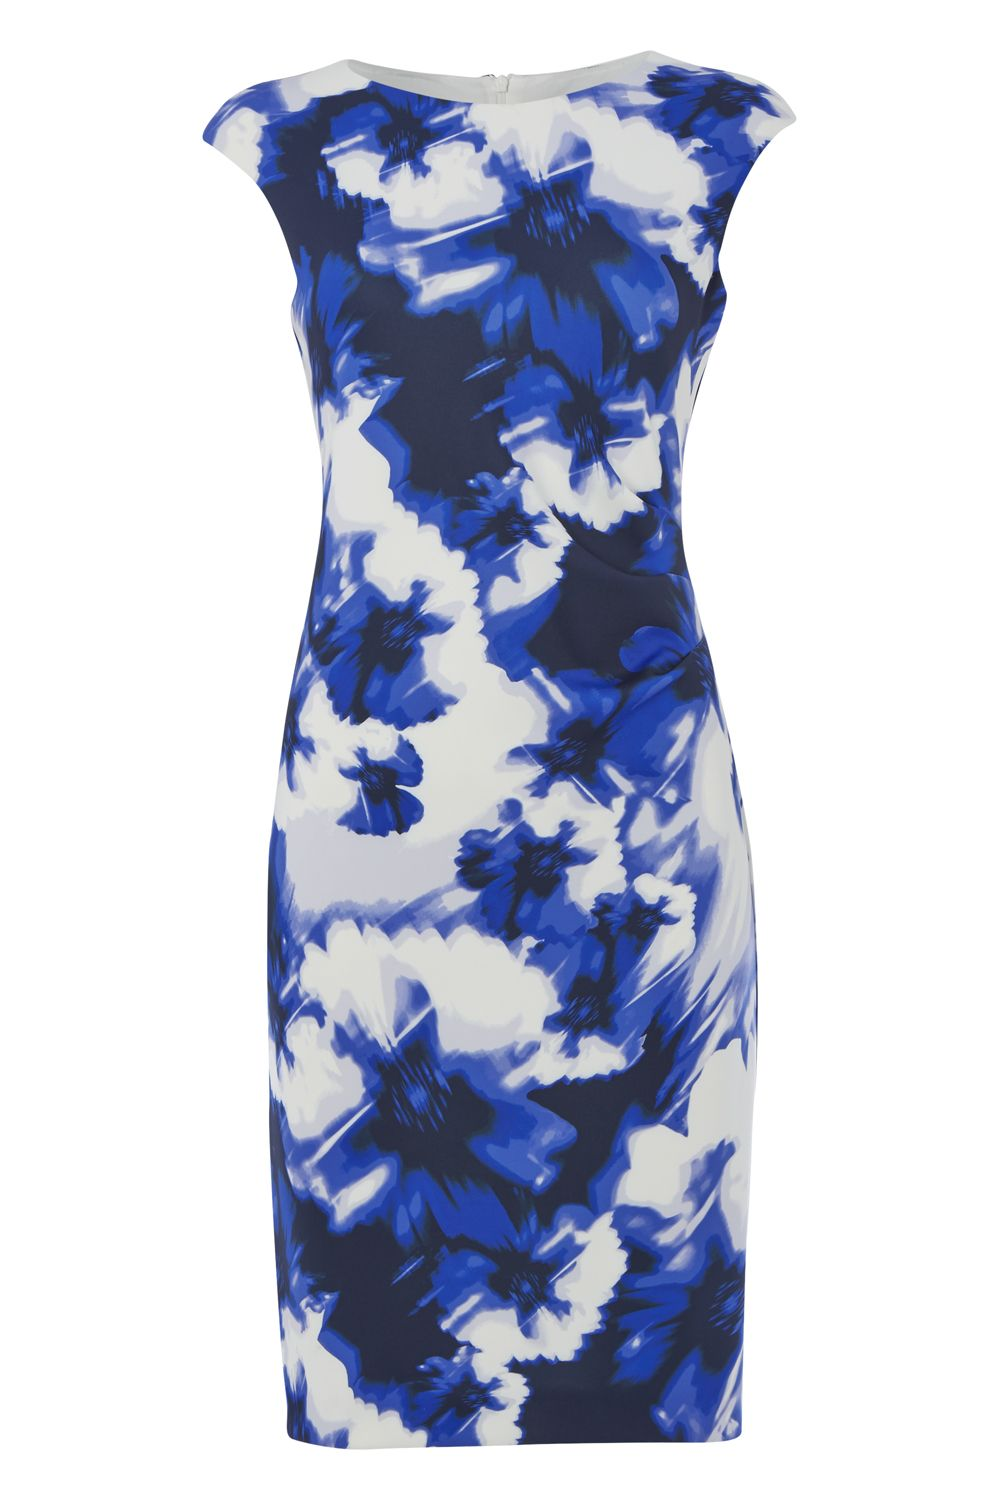 Roman Originals Side Pleat Floral Scuba Dress, Royal Blue